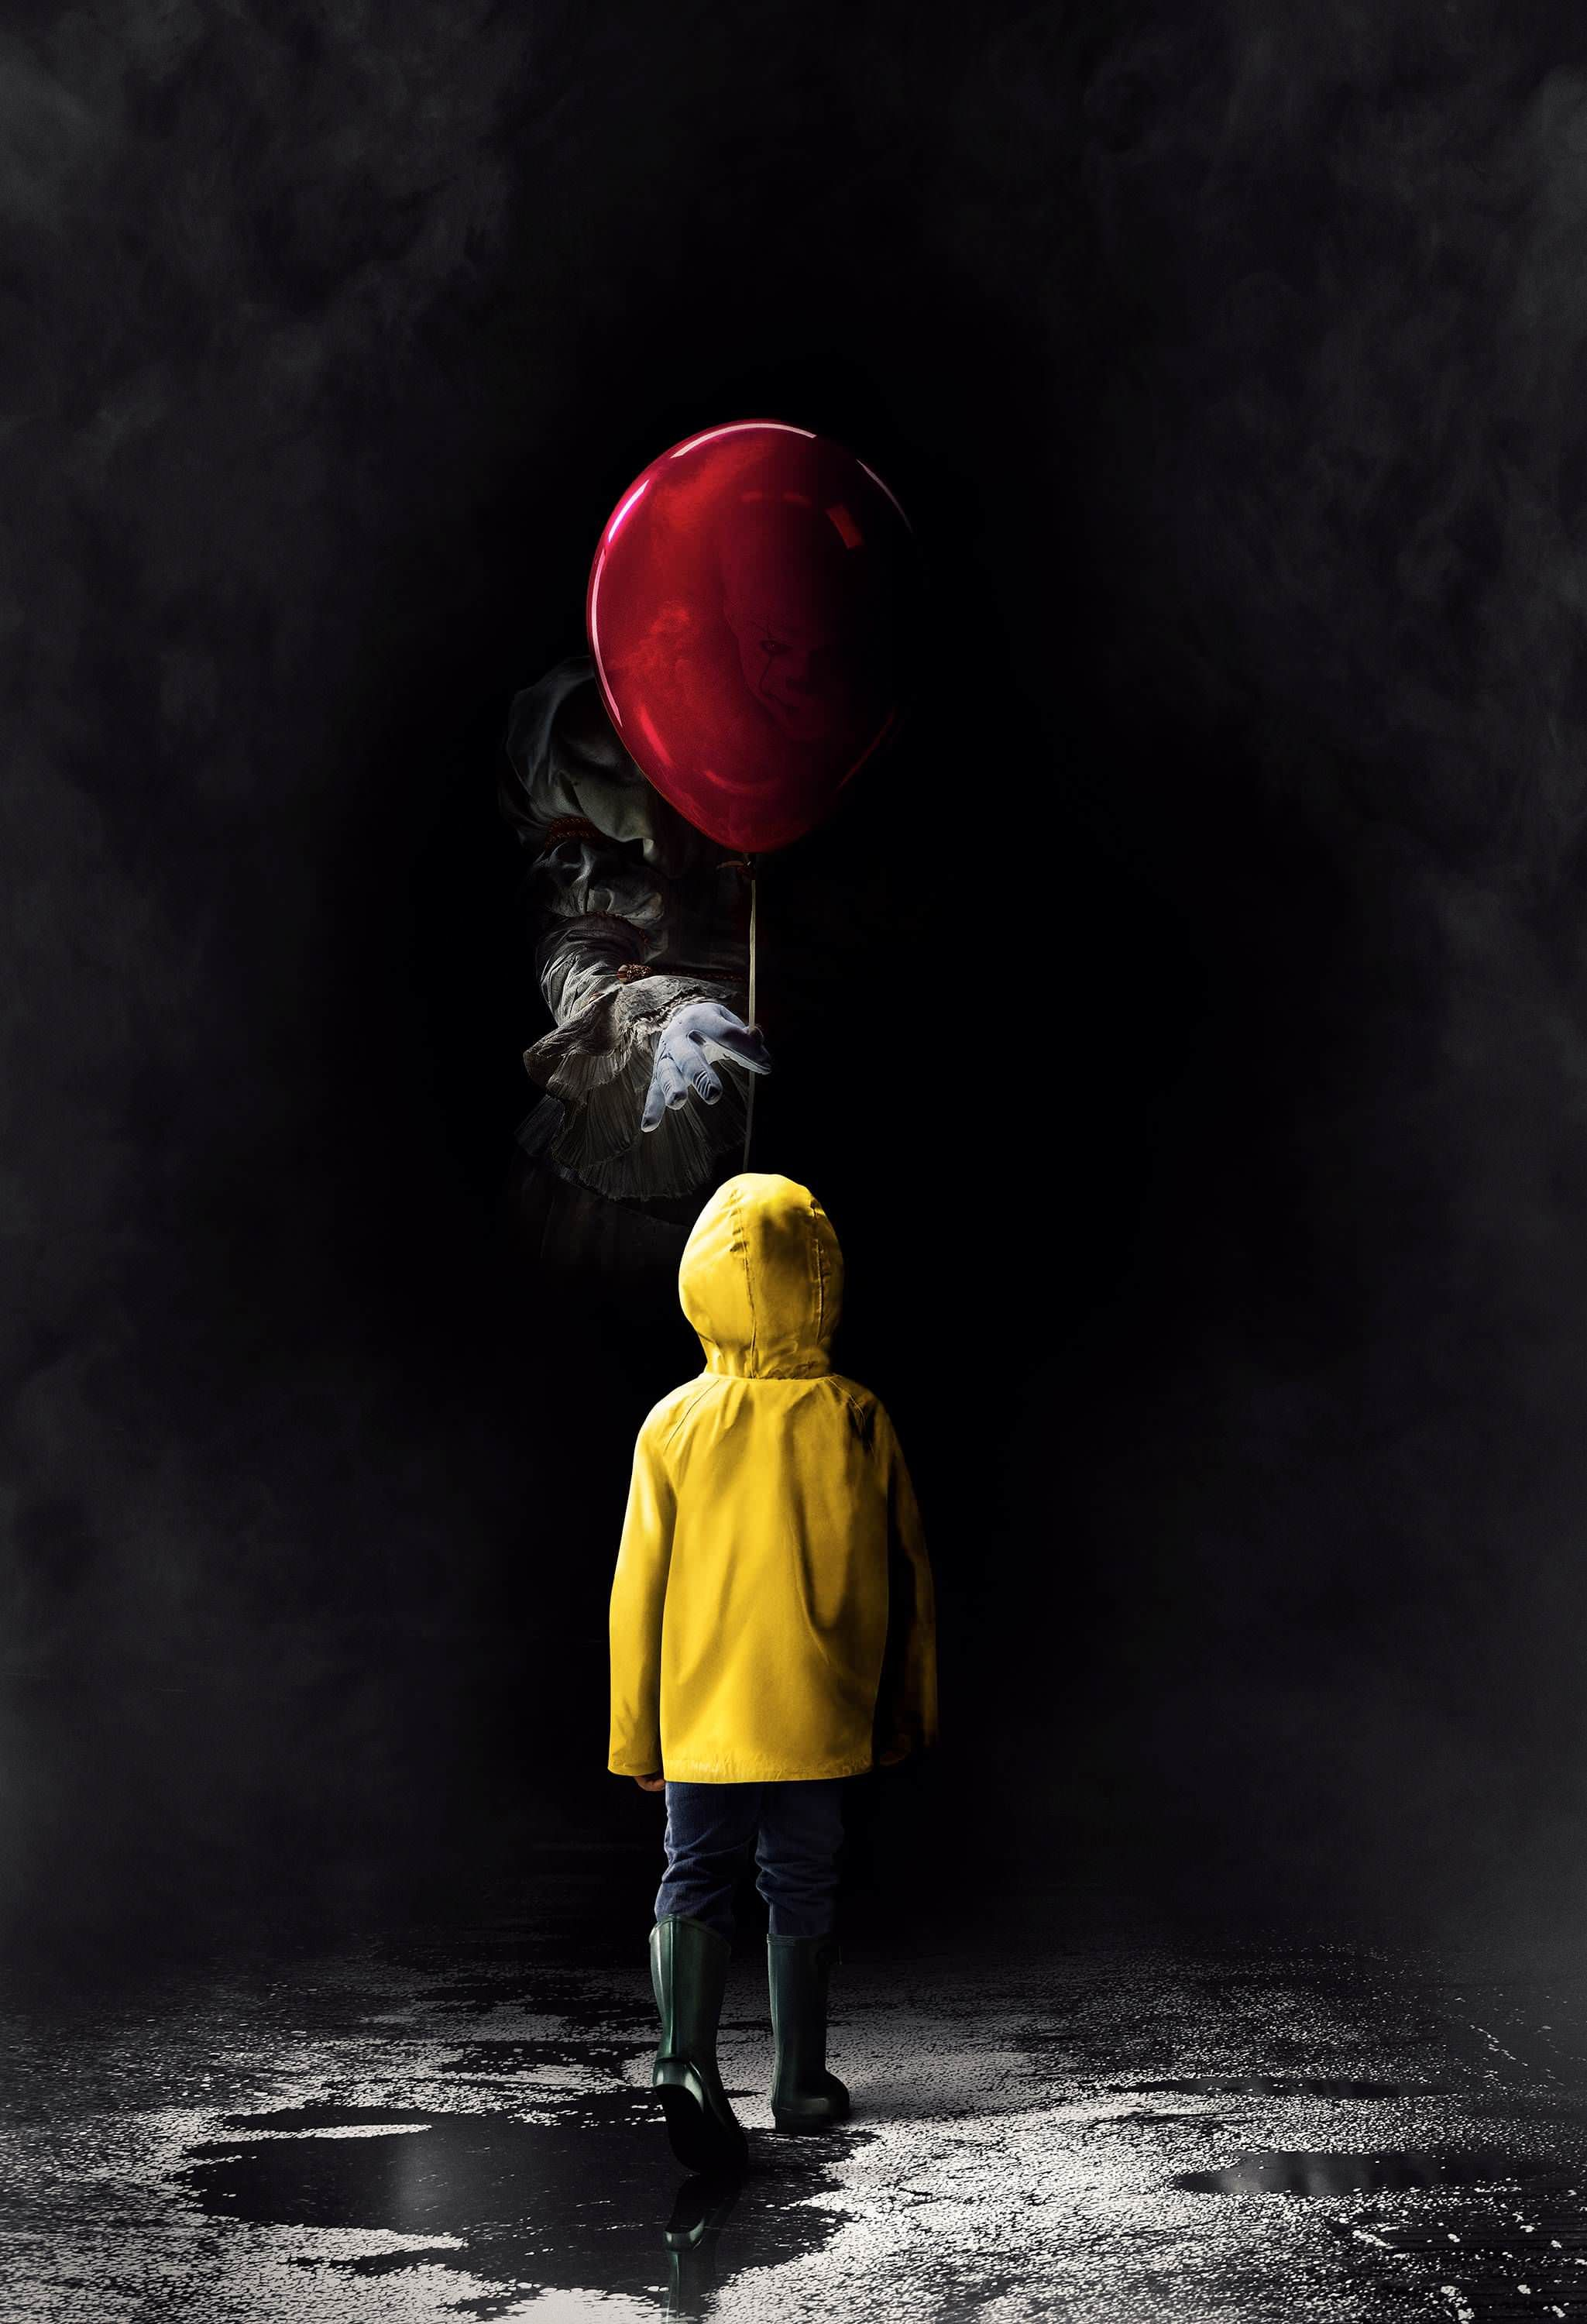 It 2017 Hd Wallpaper From Gallsource Com Bioskop Horor Film Baru